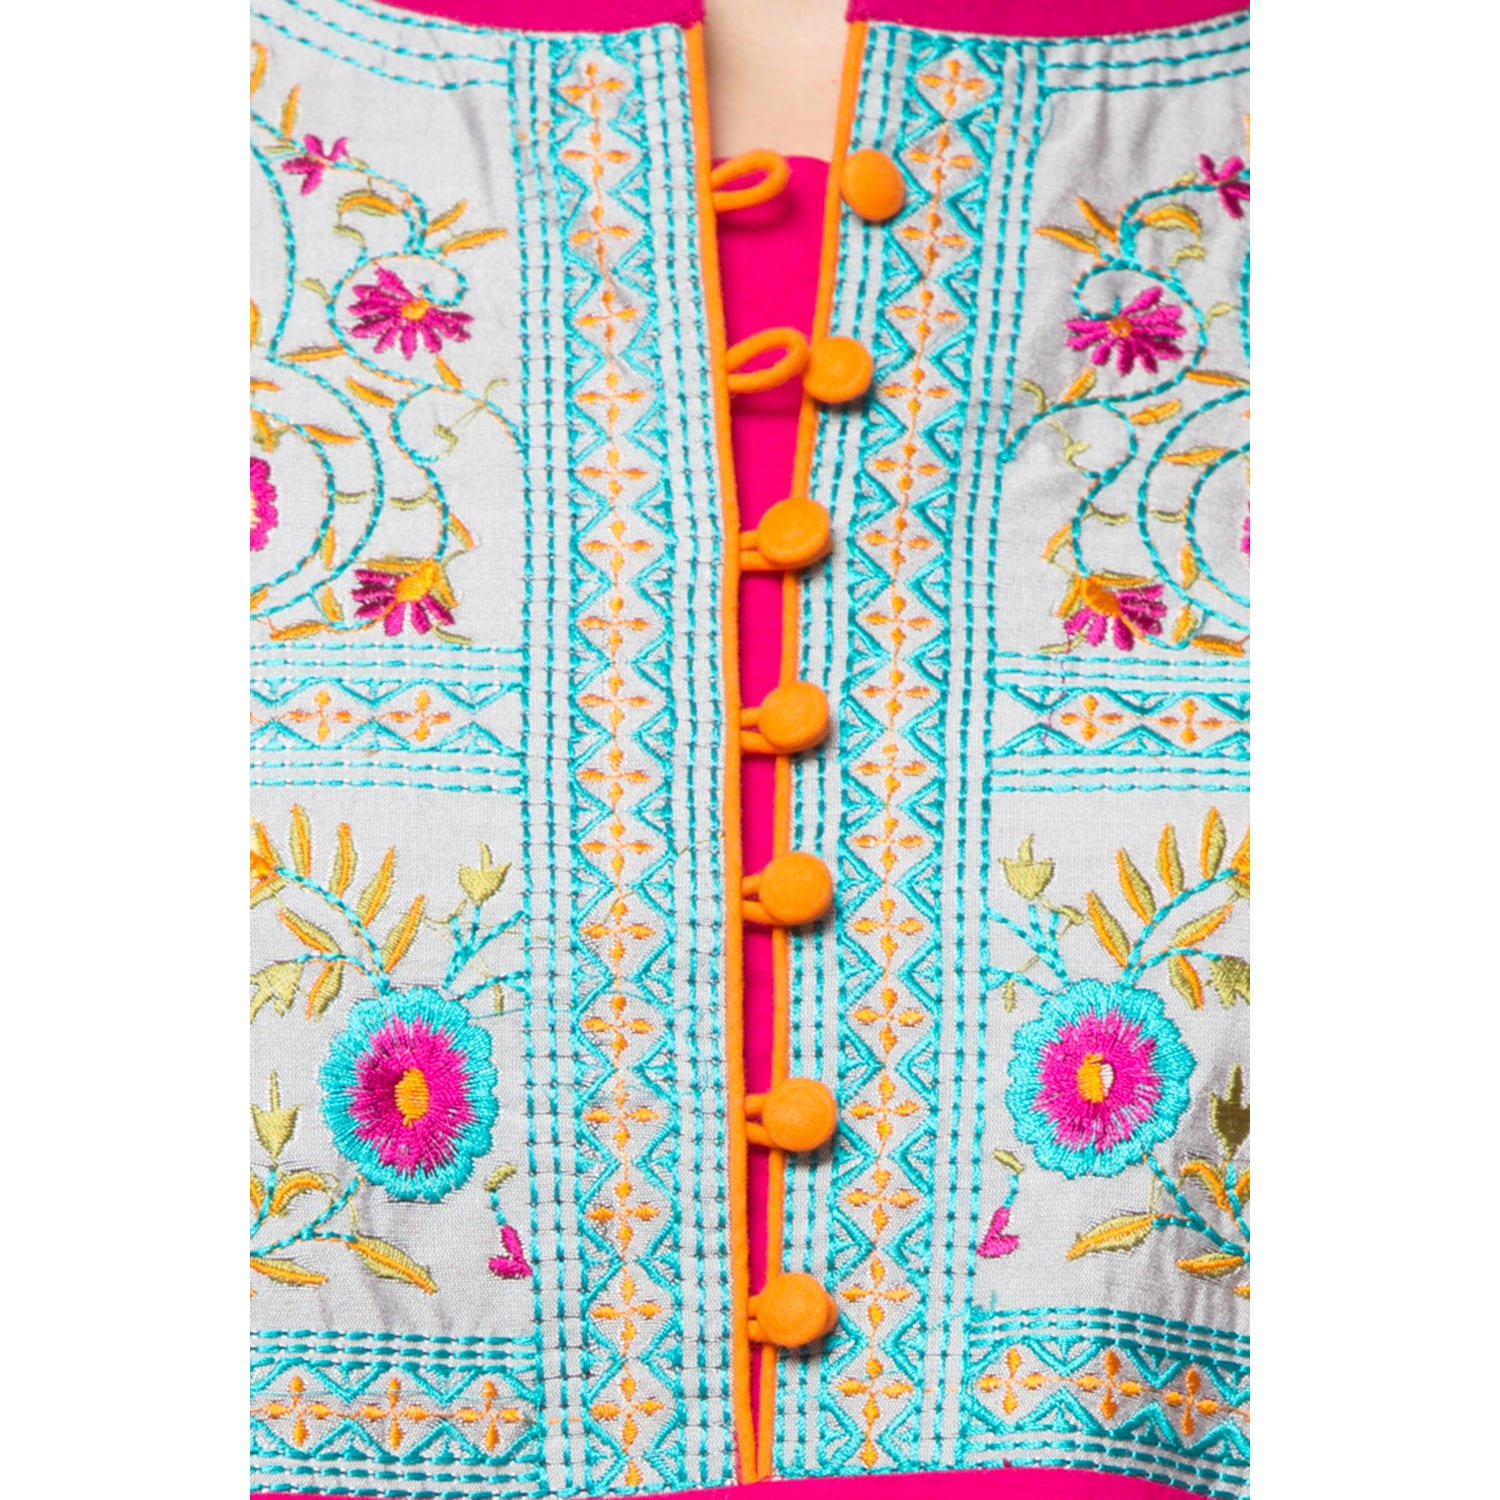 d88bf3bf4a9 Shop Handmade In-Sattva Ethnicity Women s Royal Kurta Tunic (India) - Free  Shipping On Orders Over  45 - Overstock - 12157112